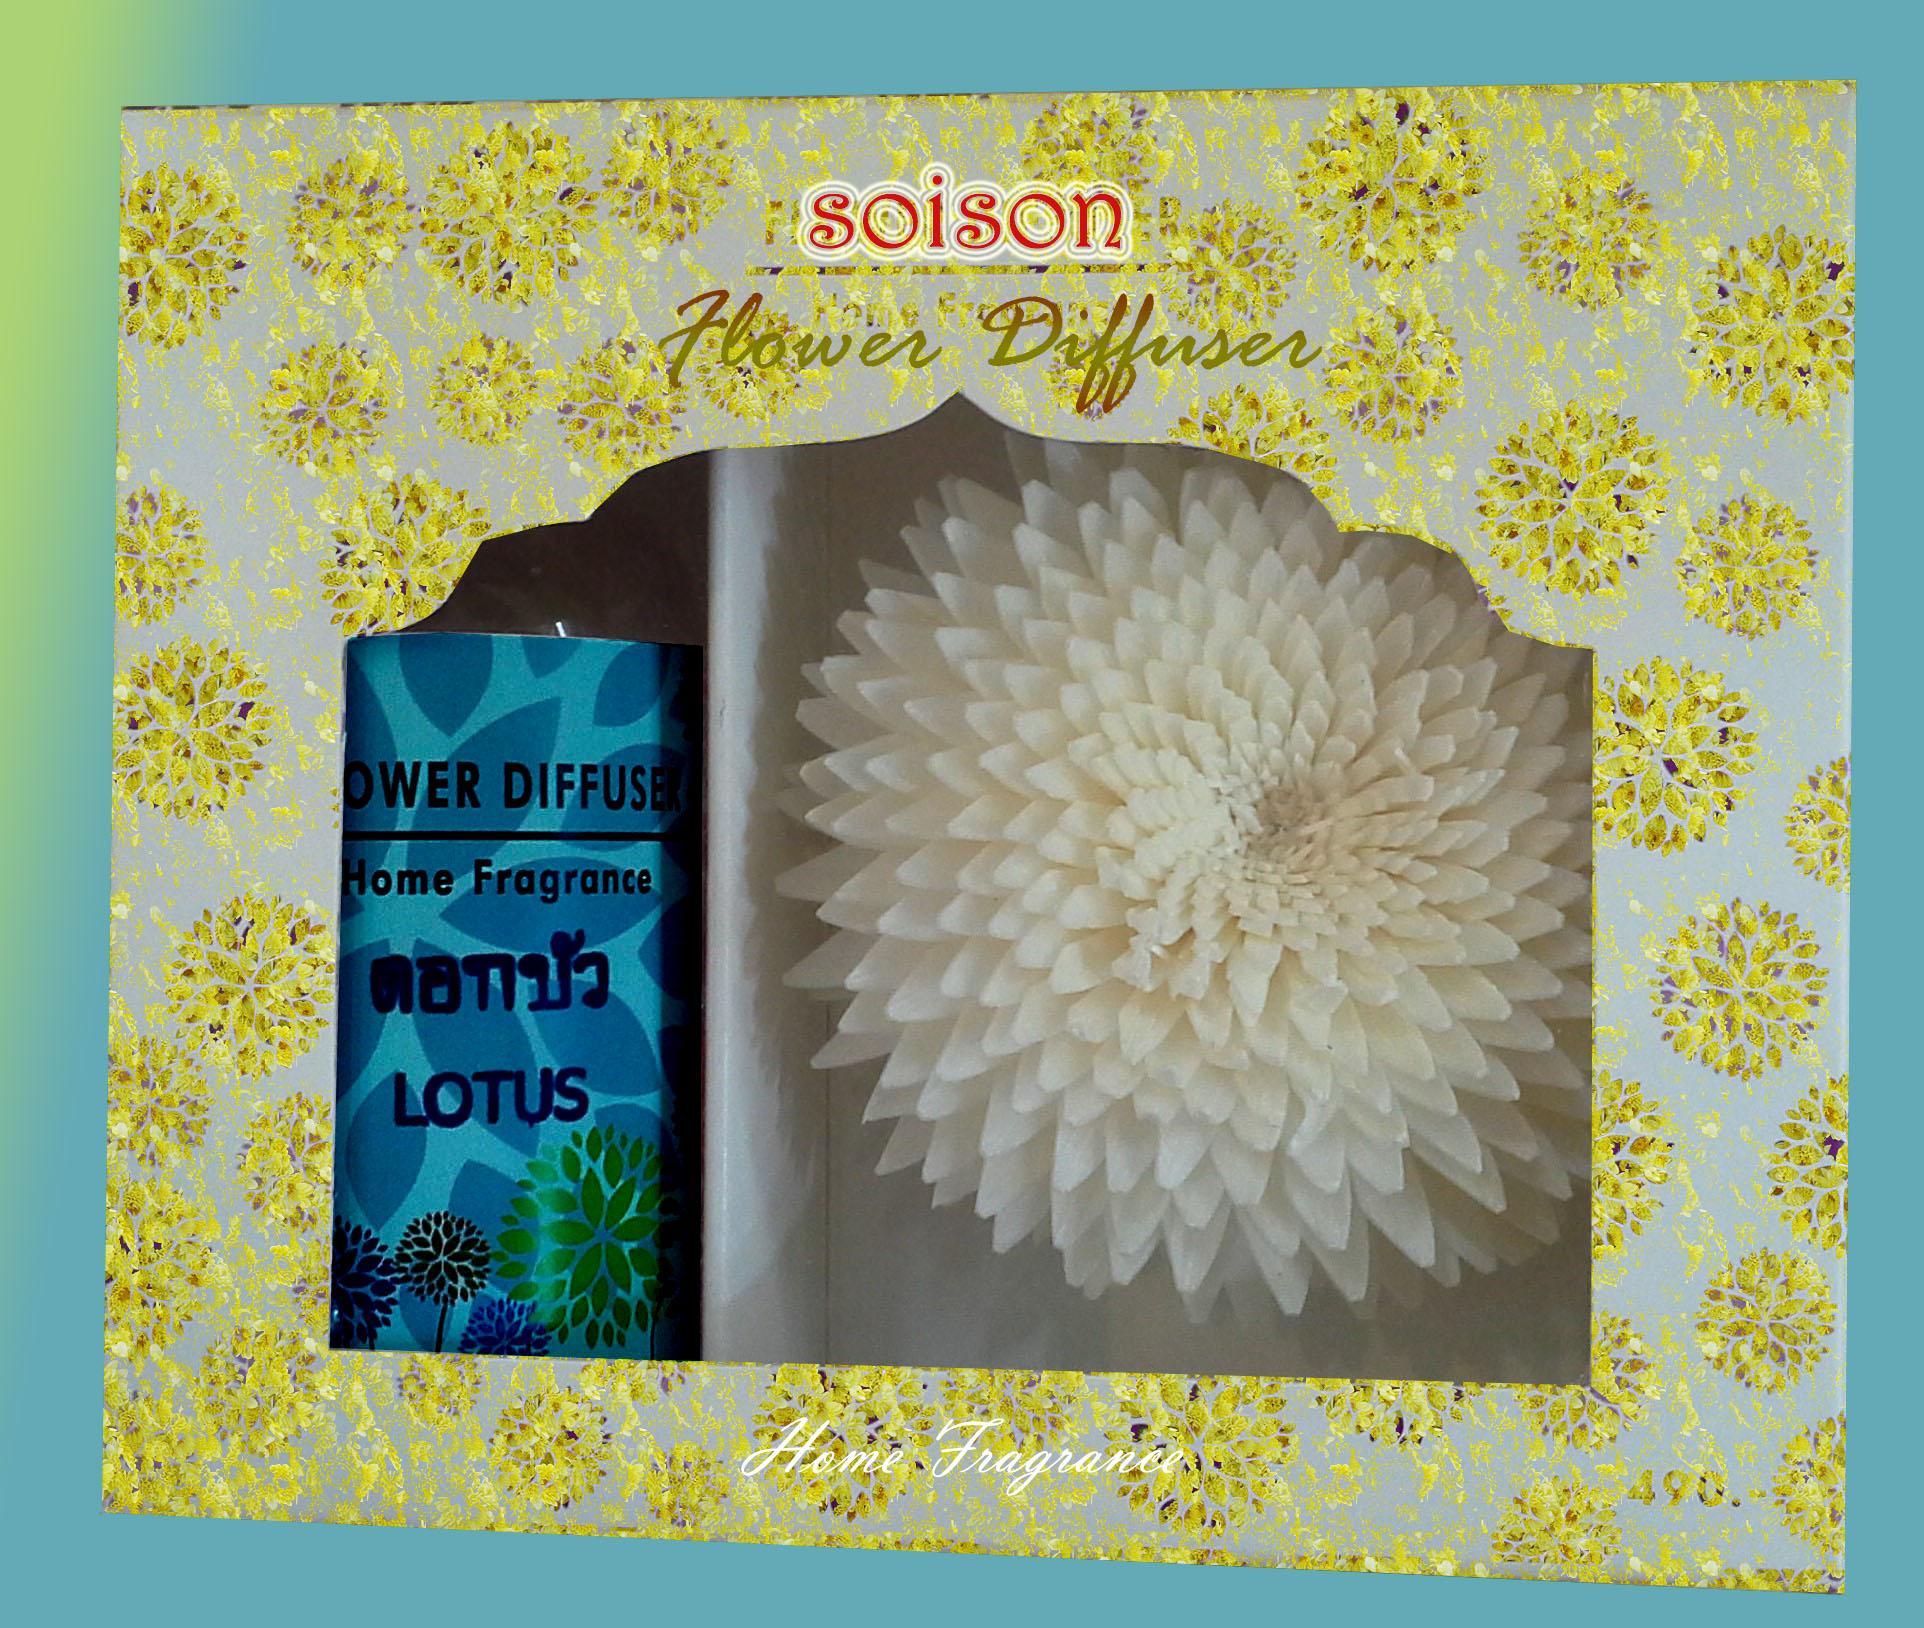 soison-diffuser fragrance package